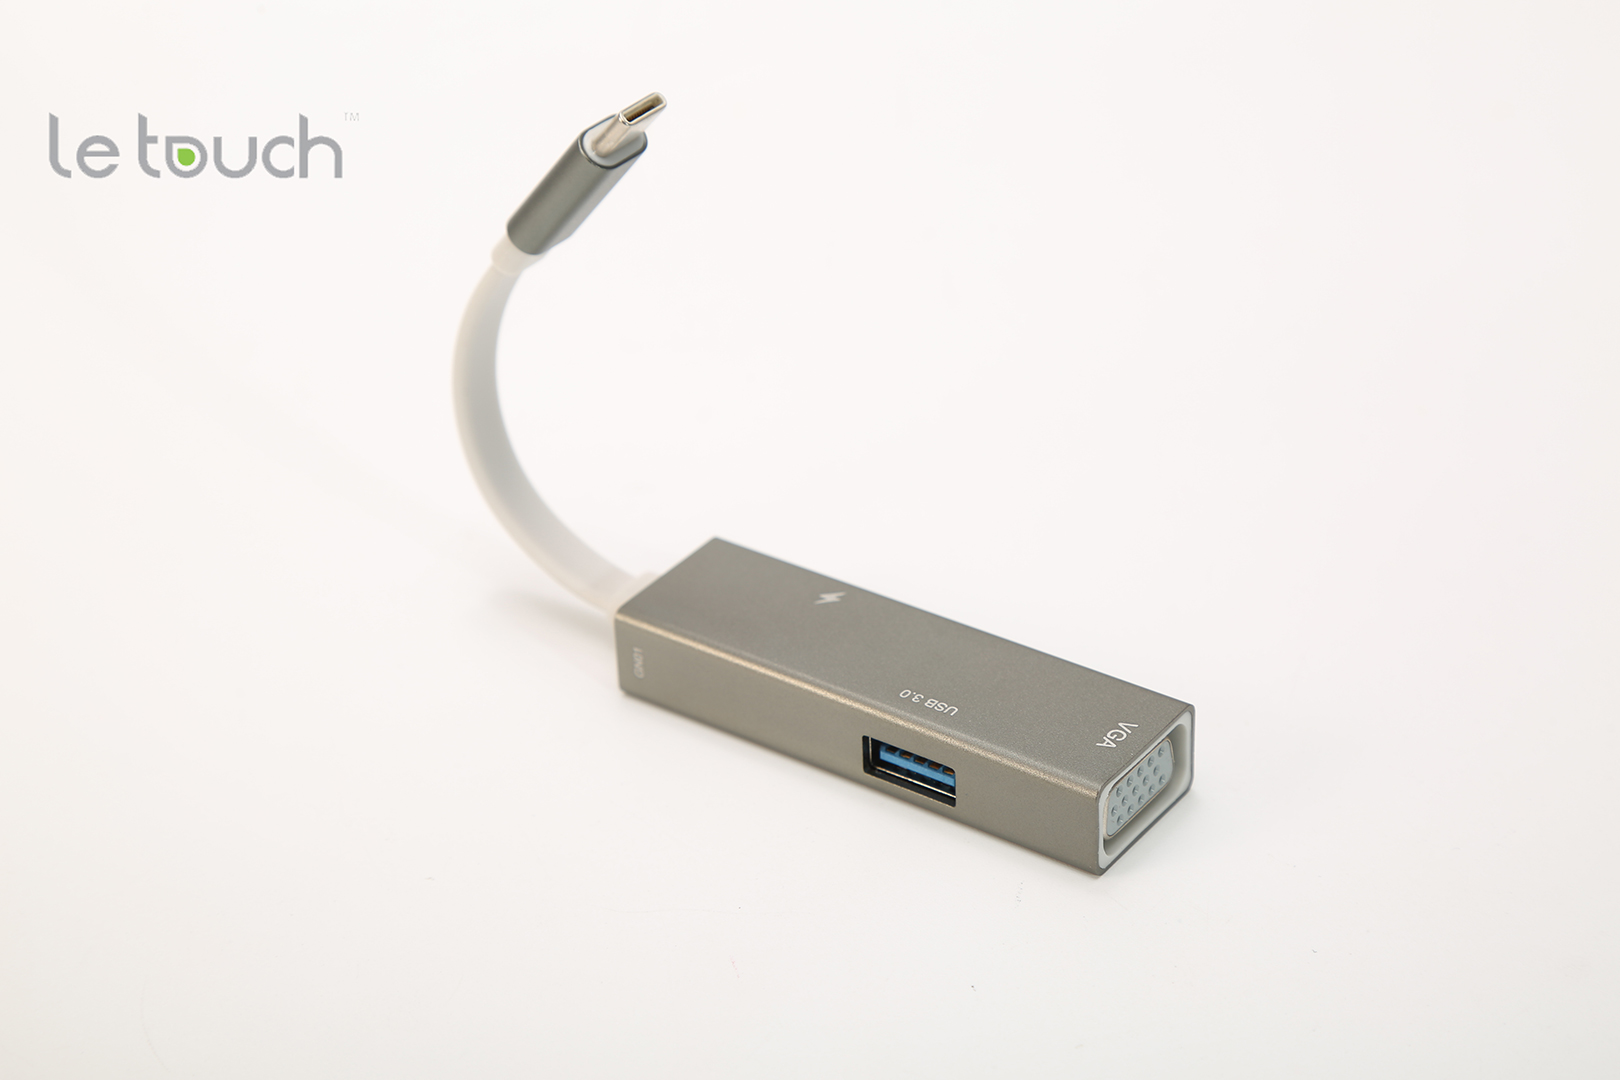 LE TOUCH USB 3.0 TYPE-C VGA HUB - GREY